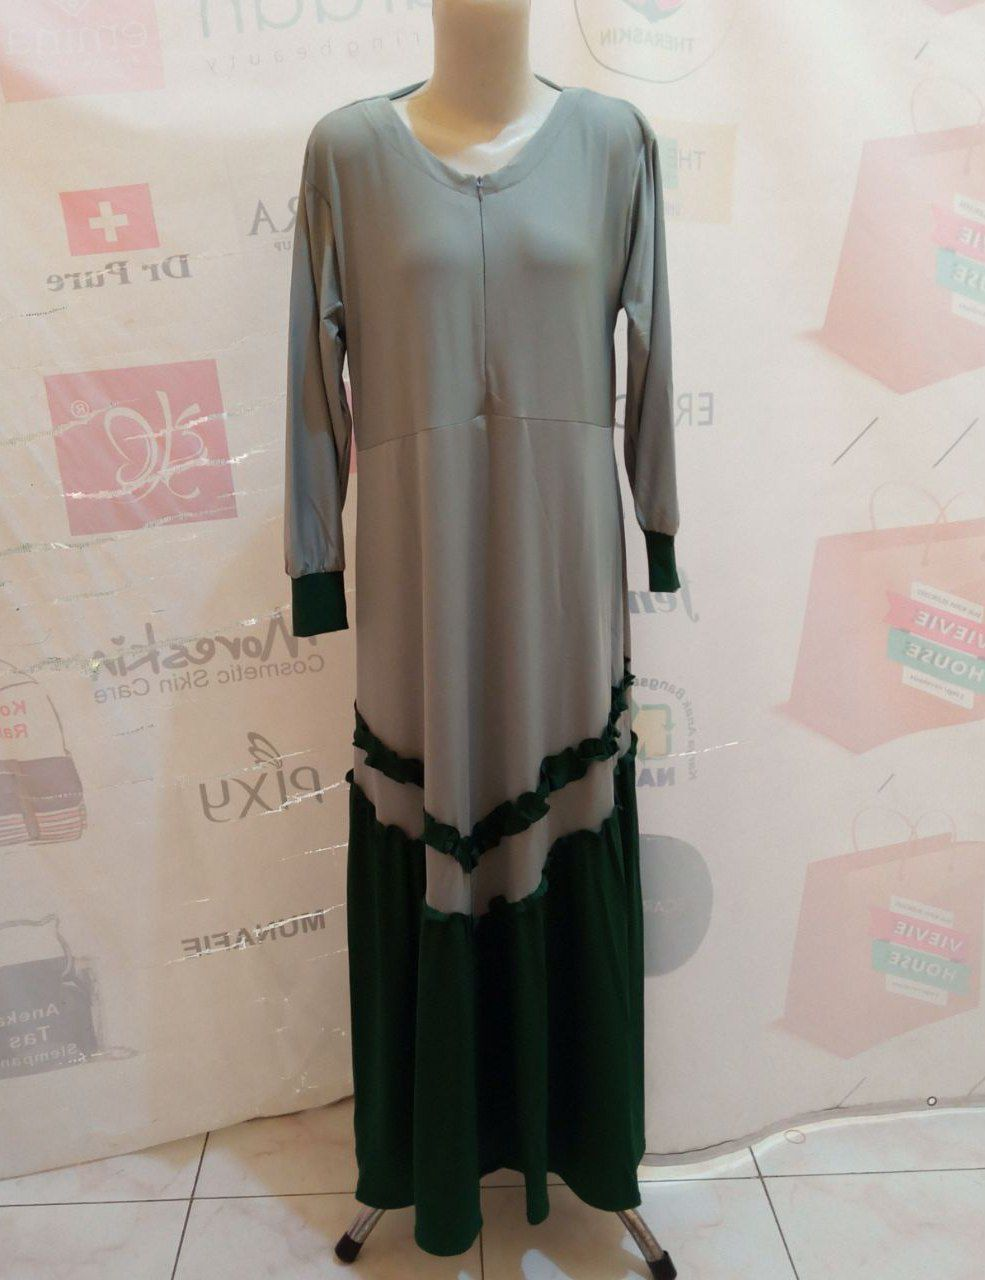 ini adalah Gamis Jersey Rempel V Abu, size: 104 cm x 135 cm, material: Jersey, color: Grey, brand: Gamisindonesia, age_group: all ages, gender: female